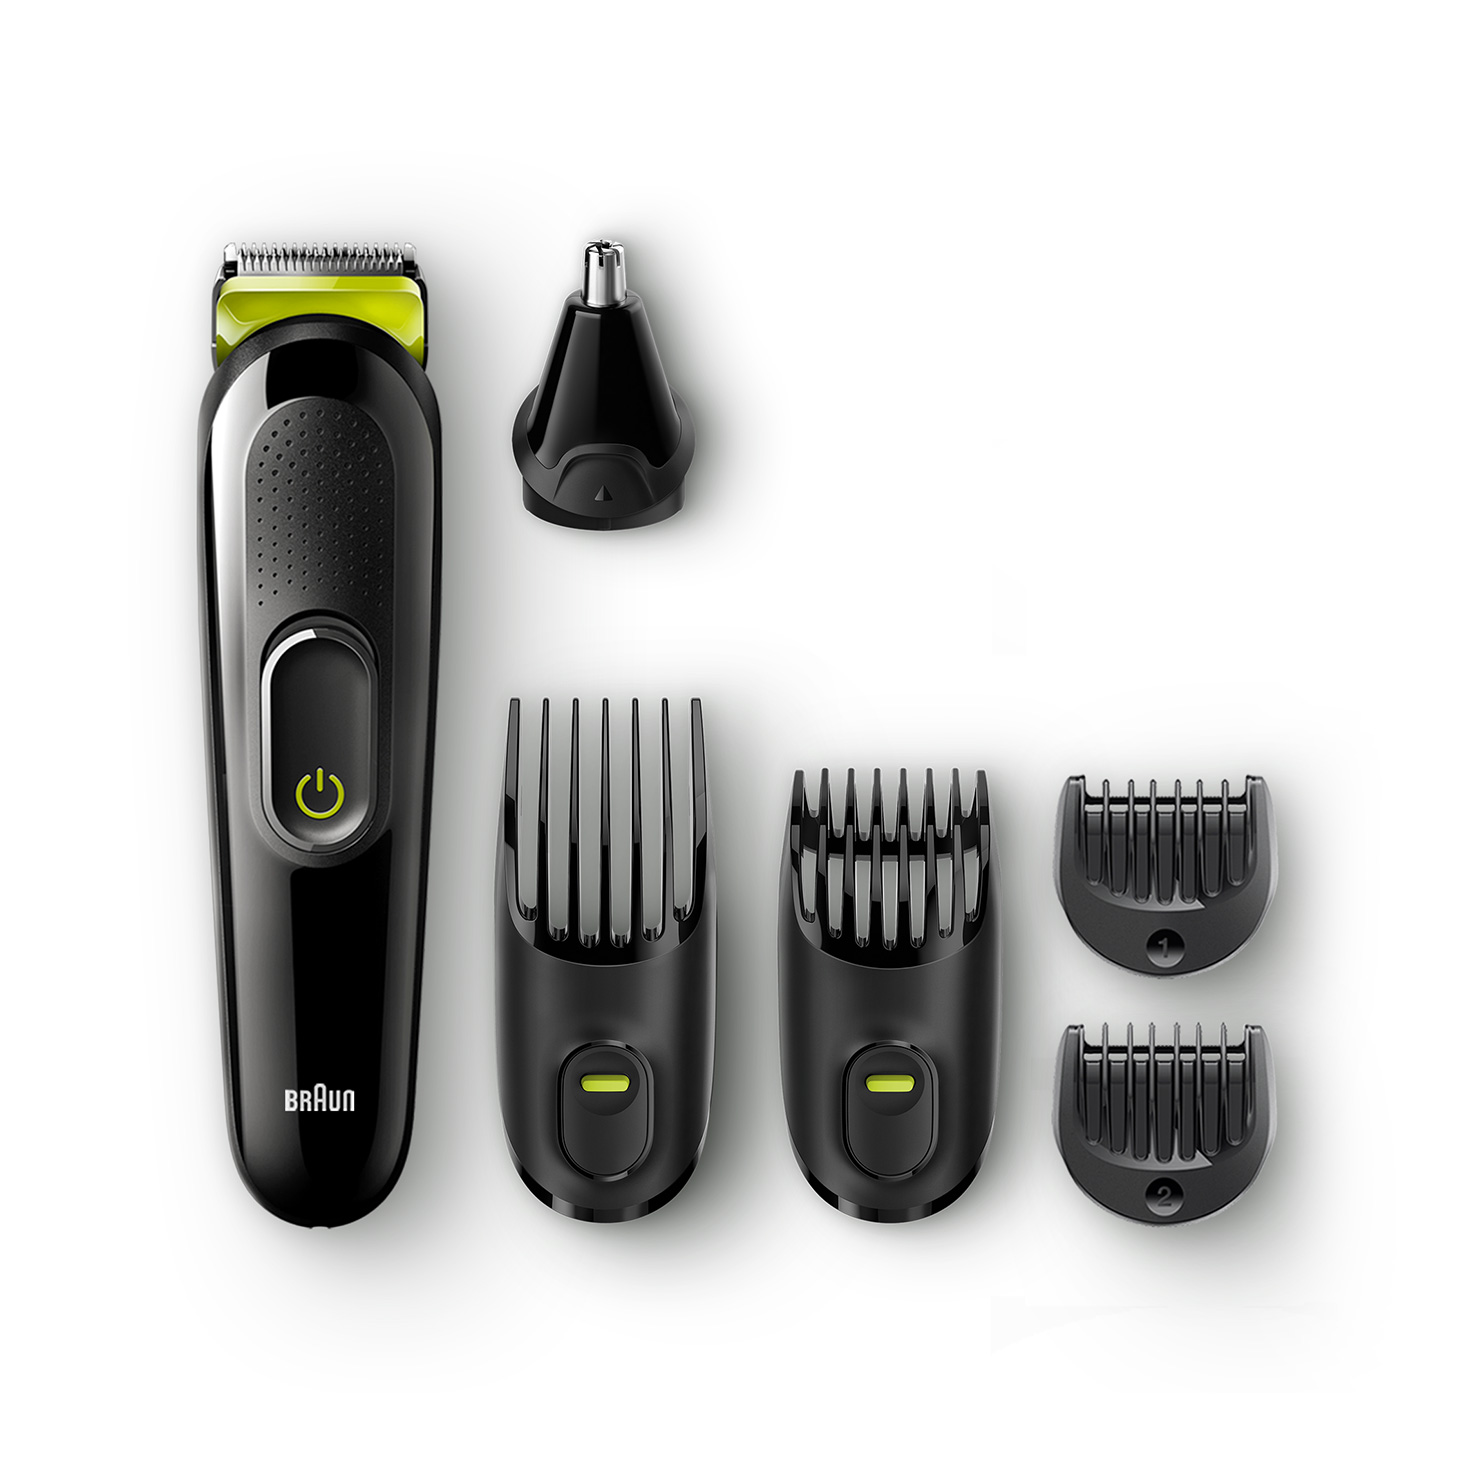 Braun All-in-one trimmer MGK3021 - What´s in the box